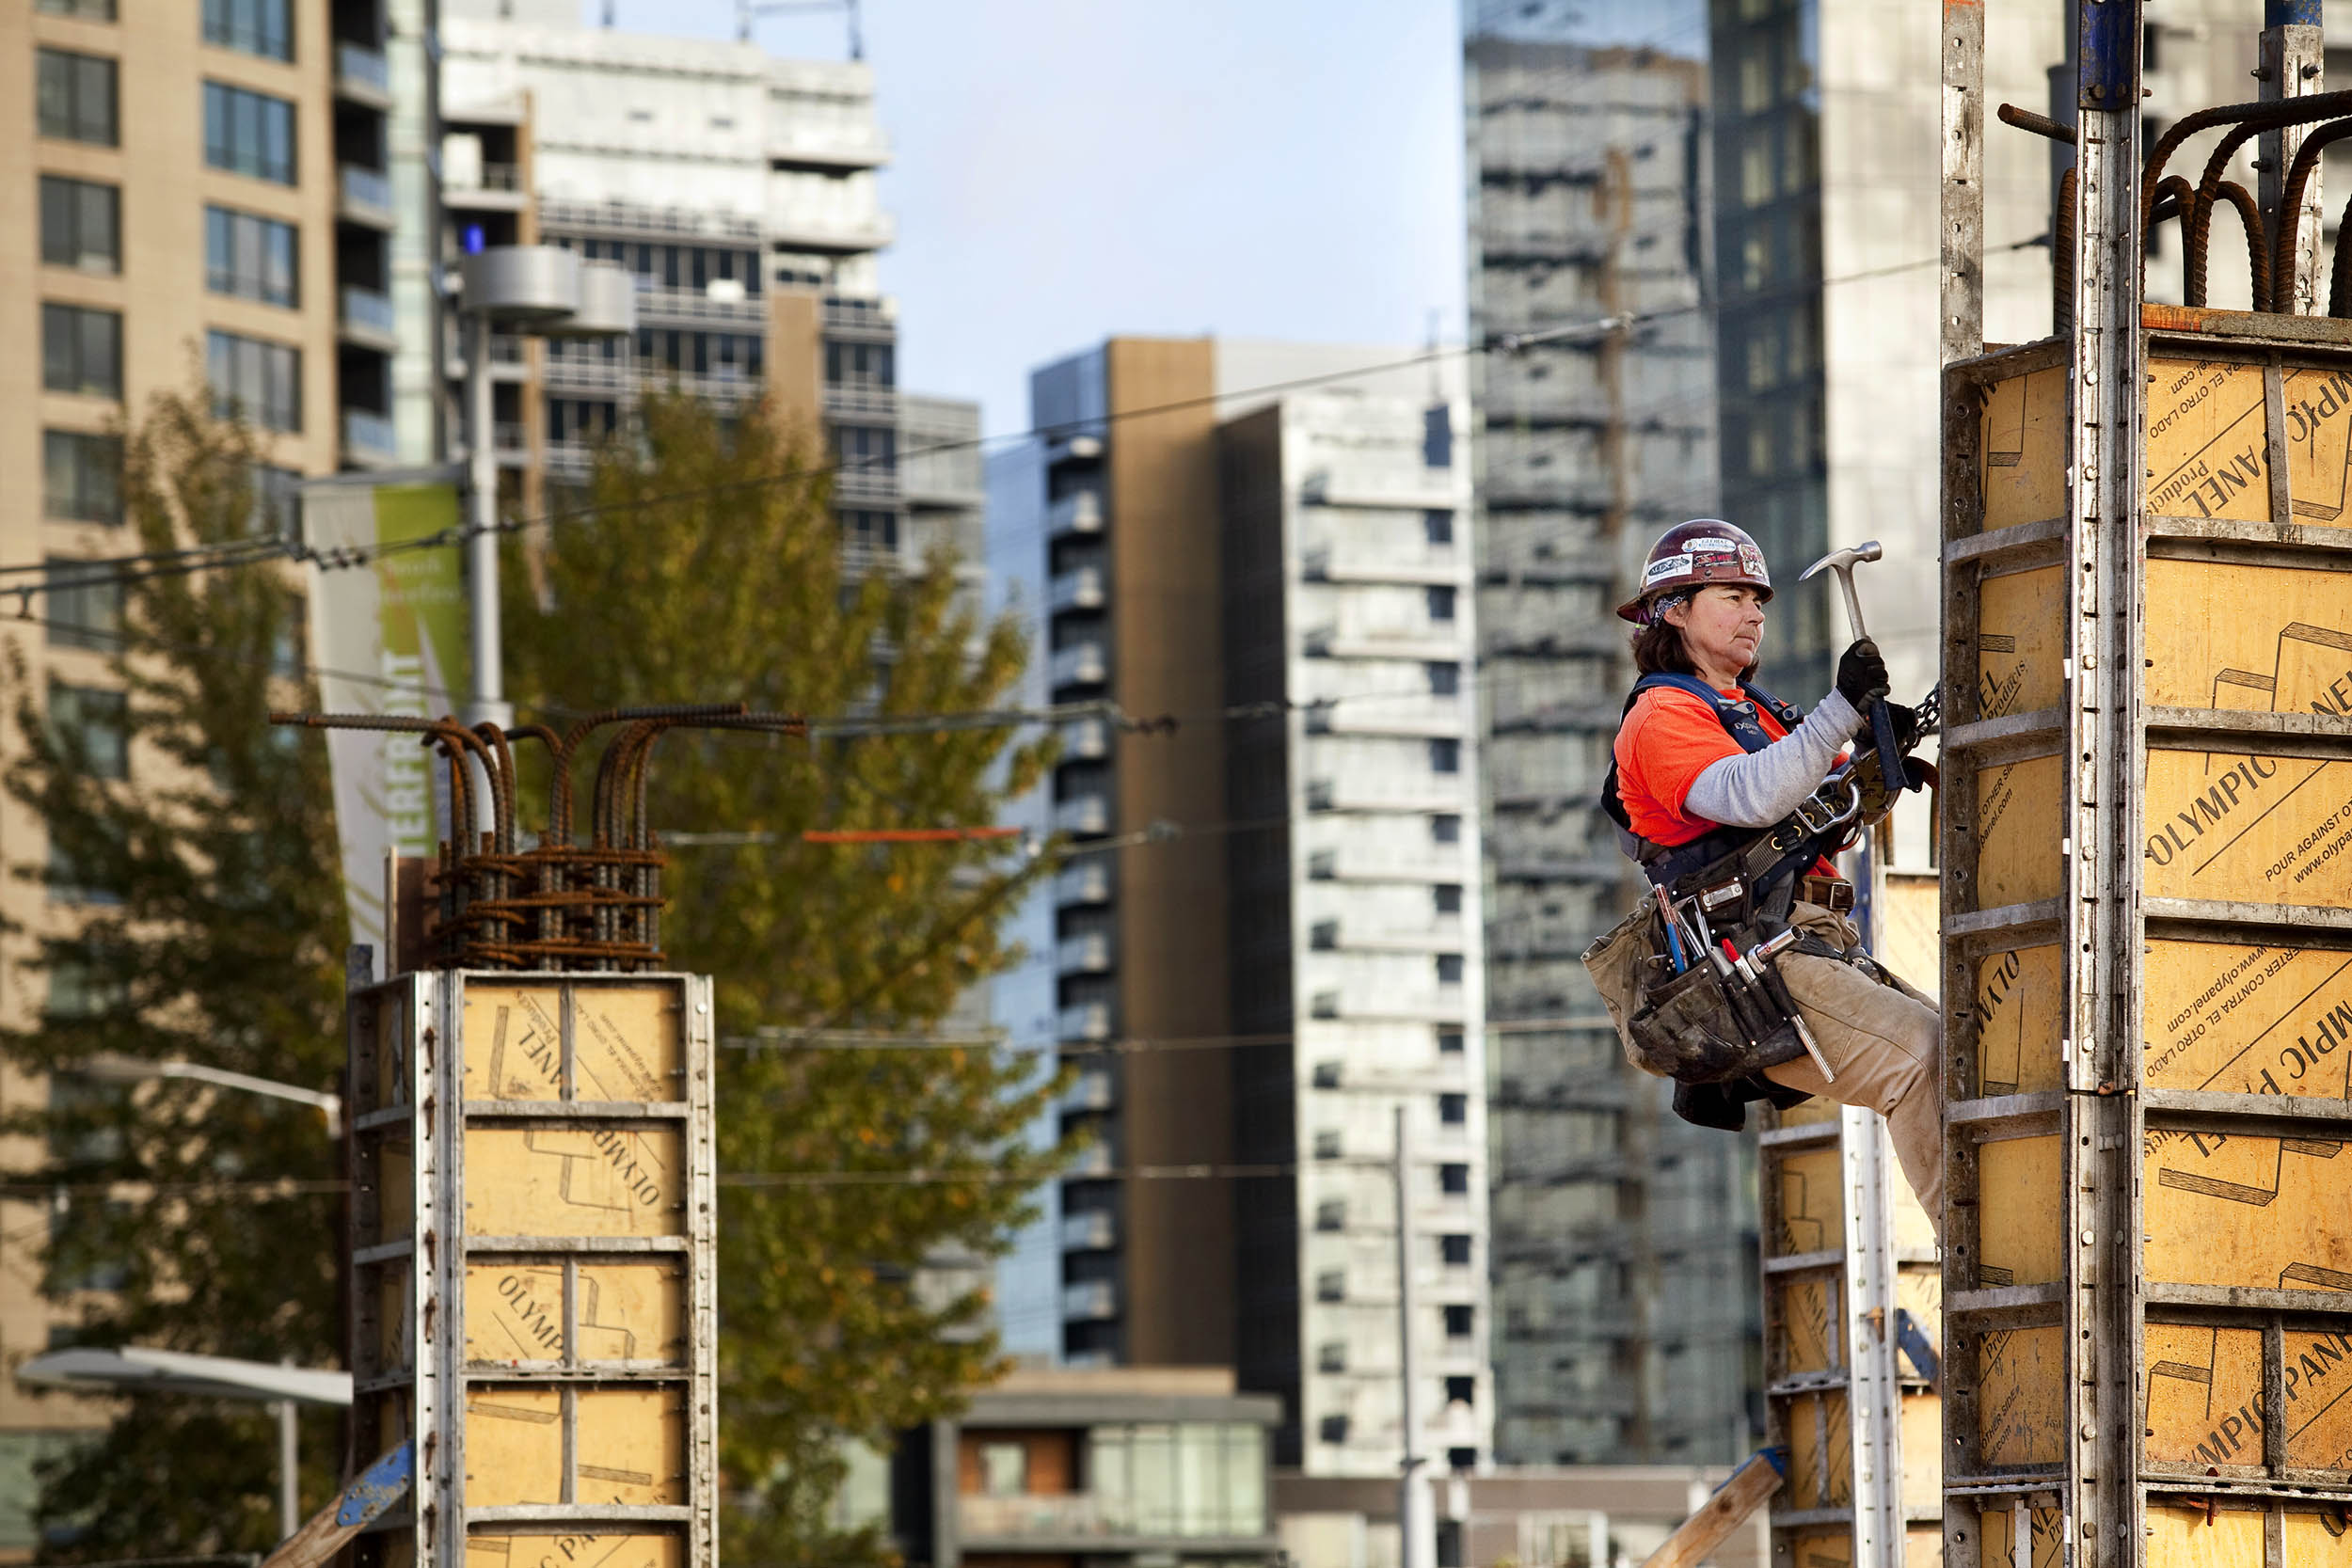 10/31/2011 - Consturction on a new high-rise is under way in South Waterfront. Tribune Photo : Christopher Onstott